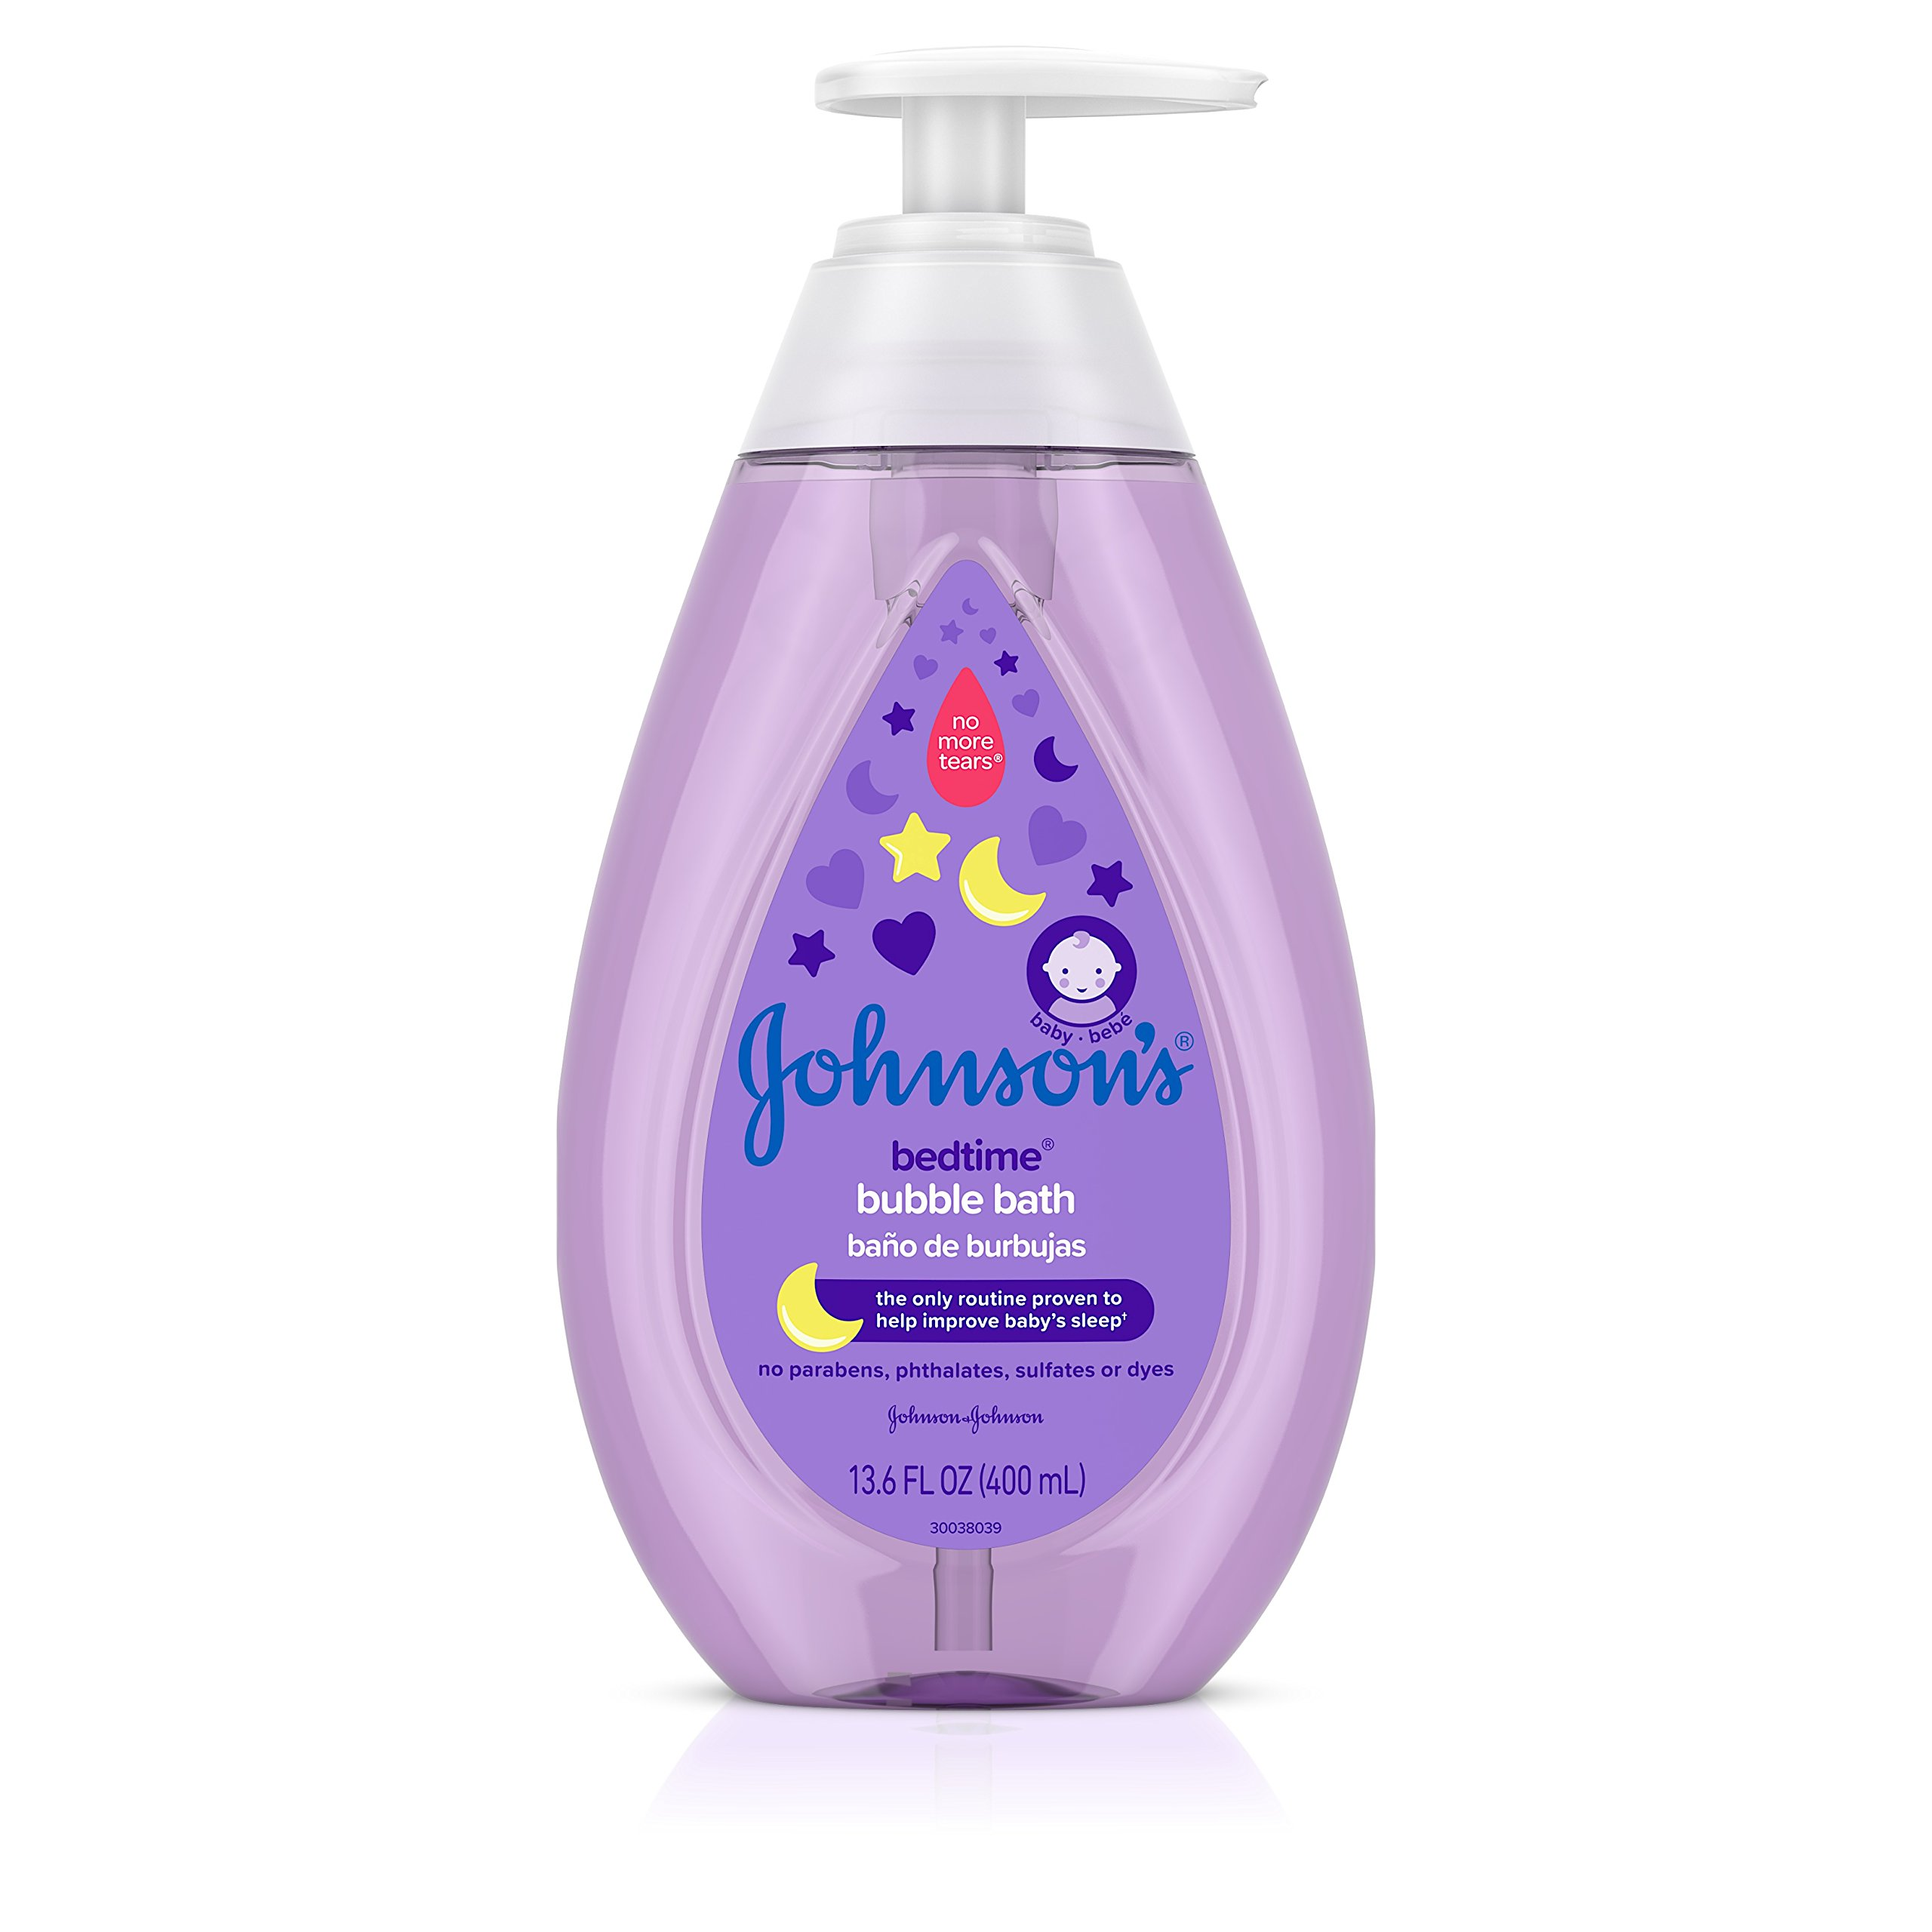 Johnson's Baby Hypoallergenic Bedtime Baby Bubble Bath With Natural Calm Aromas, 13.6 Fluid Ounce (Pack of 3)